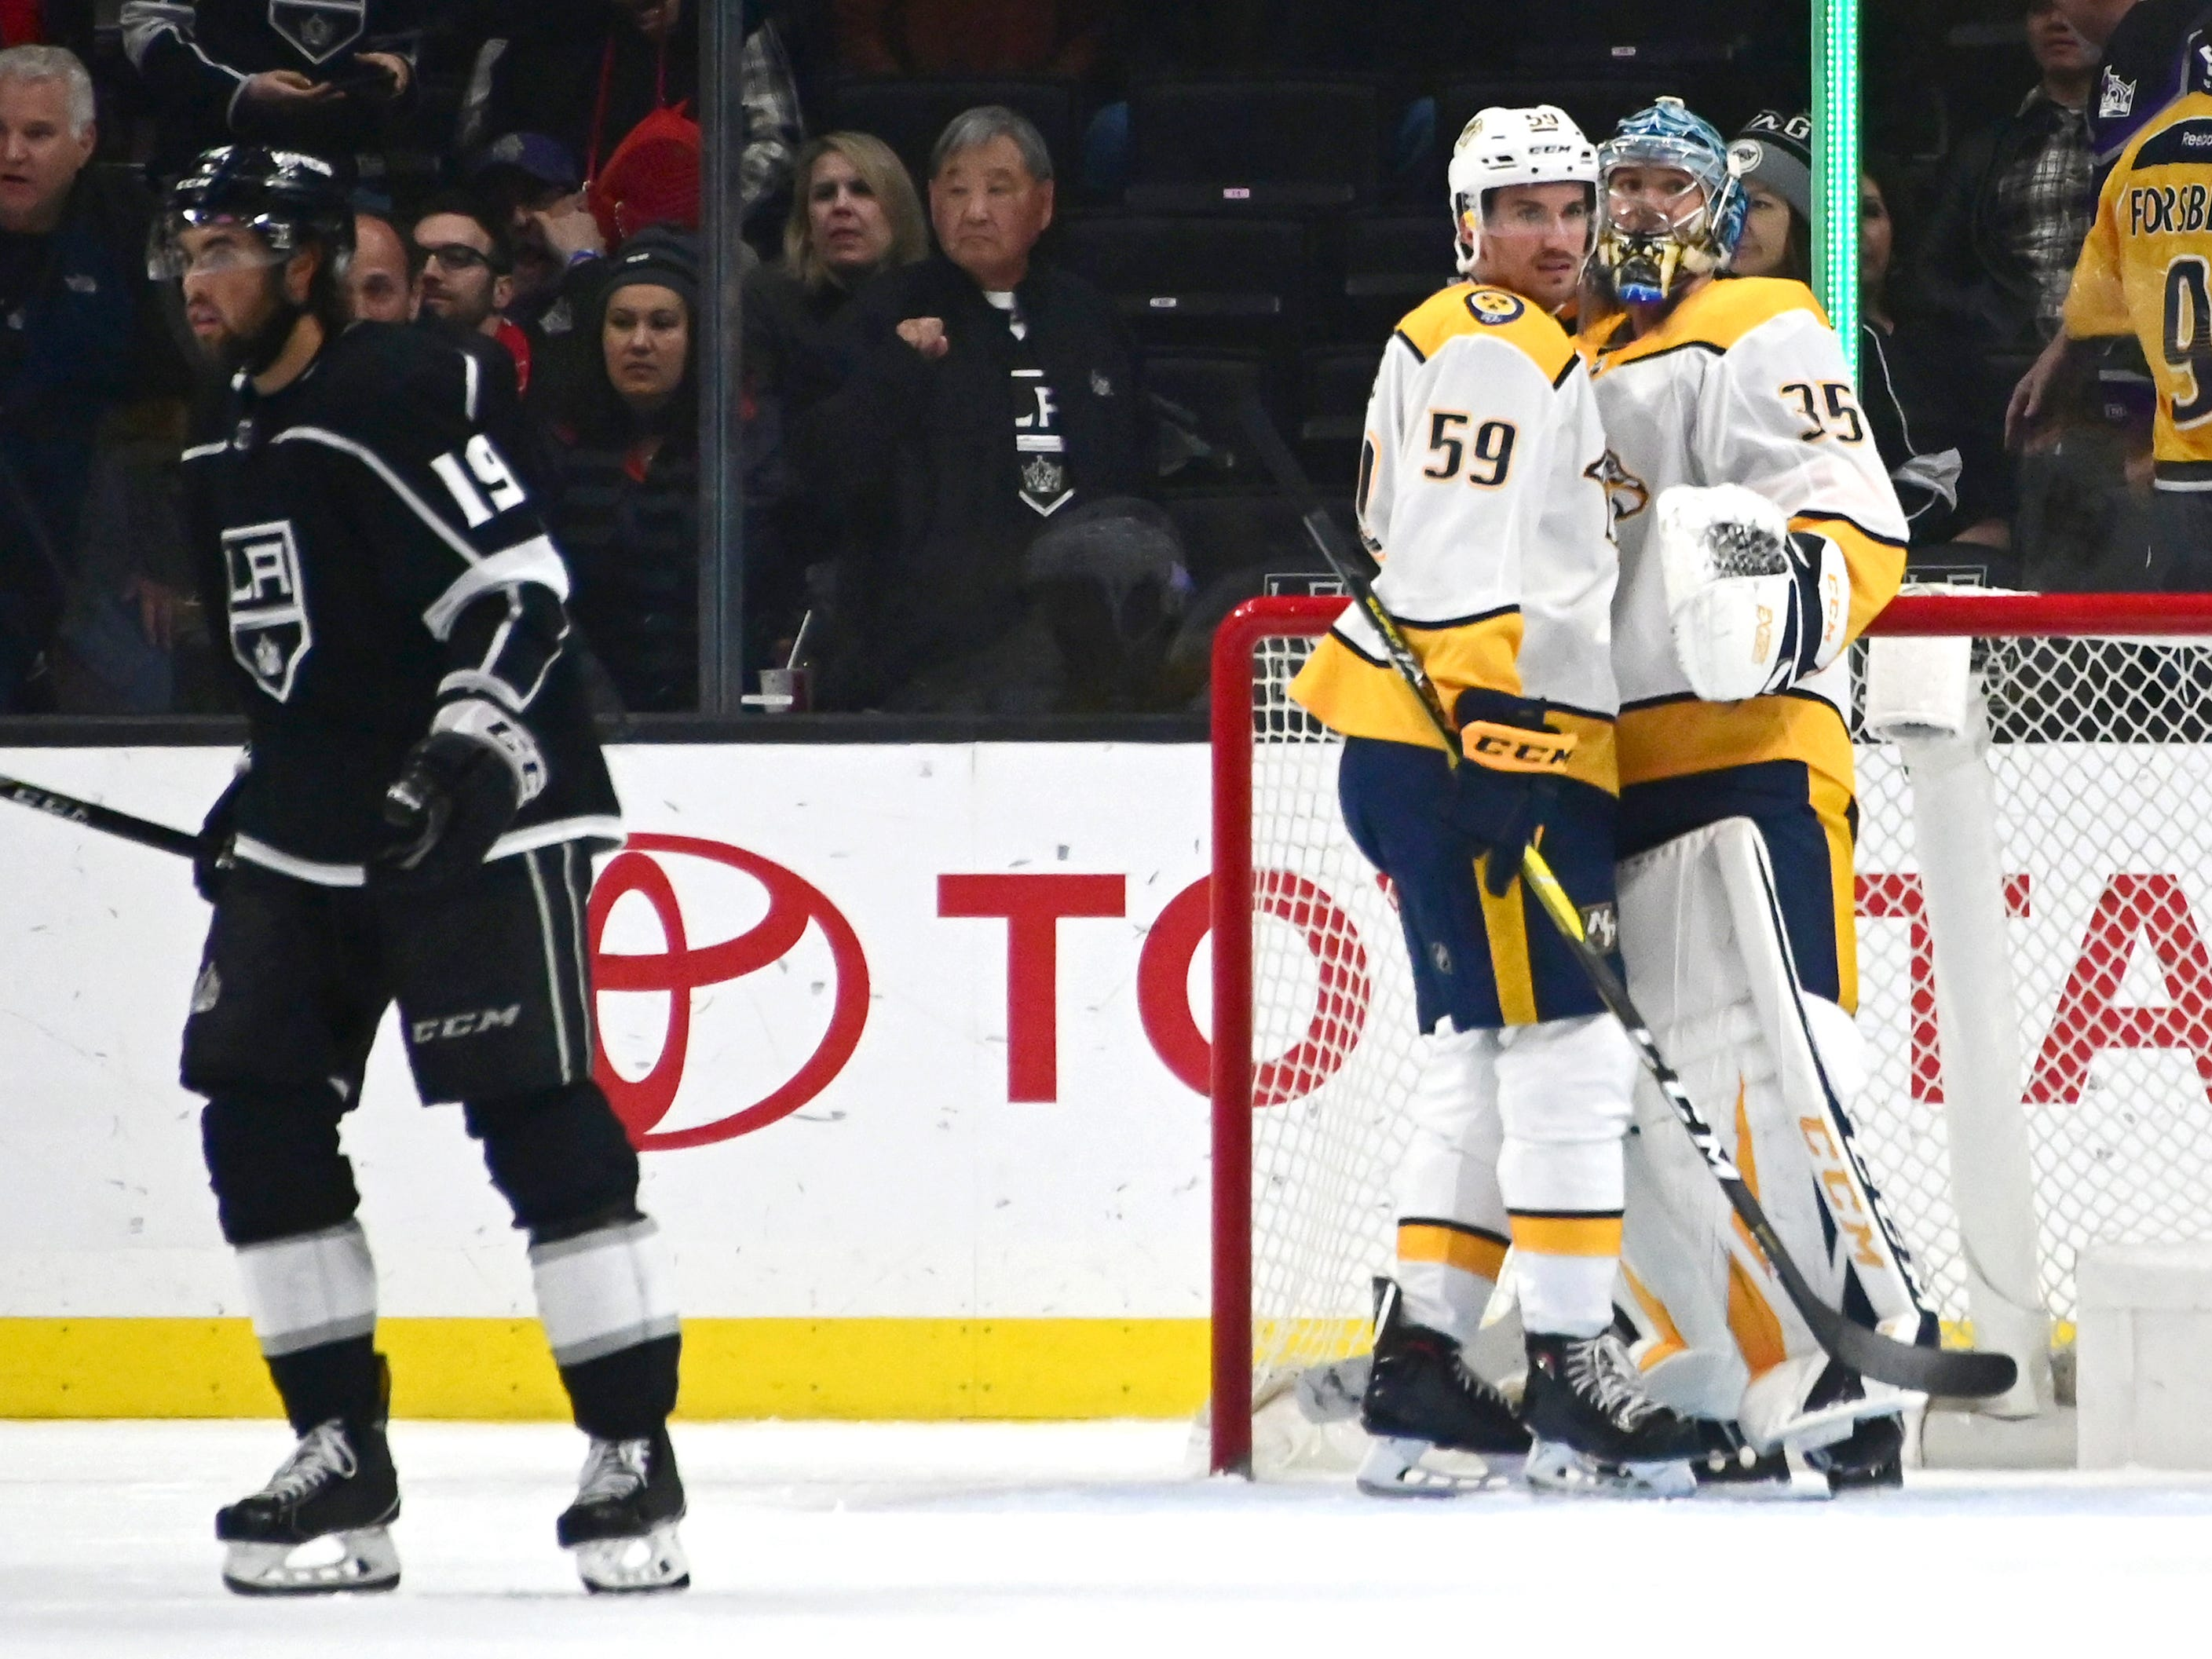 Mar 14, 2019: Predators 3, Kings 1 -- Nashville Predators goaltender Pekka Rinne (35) and defenseman Roman Josi (59) embrace at the end of the game against the Los Angeles Kings at Staples Center.